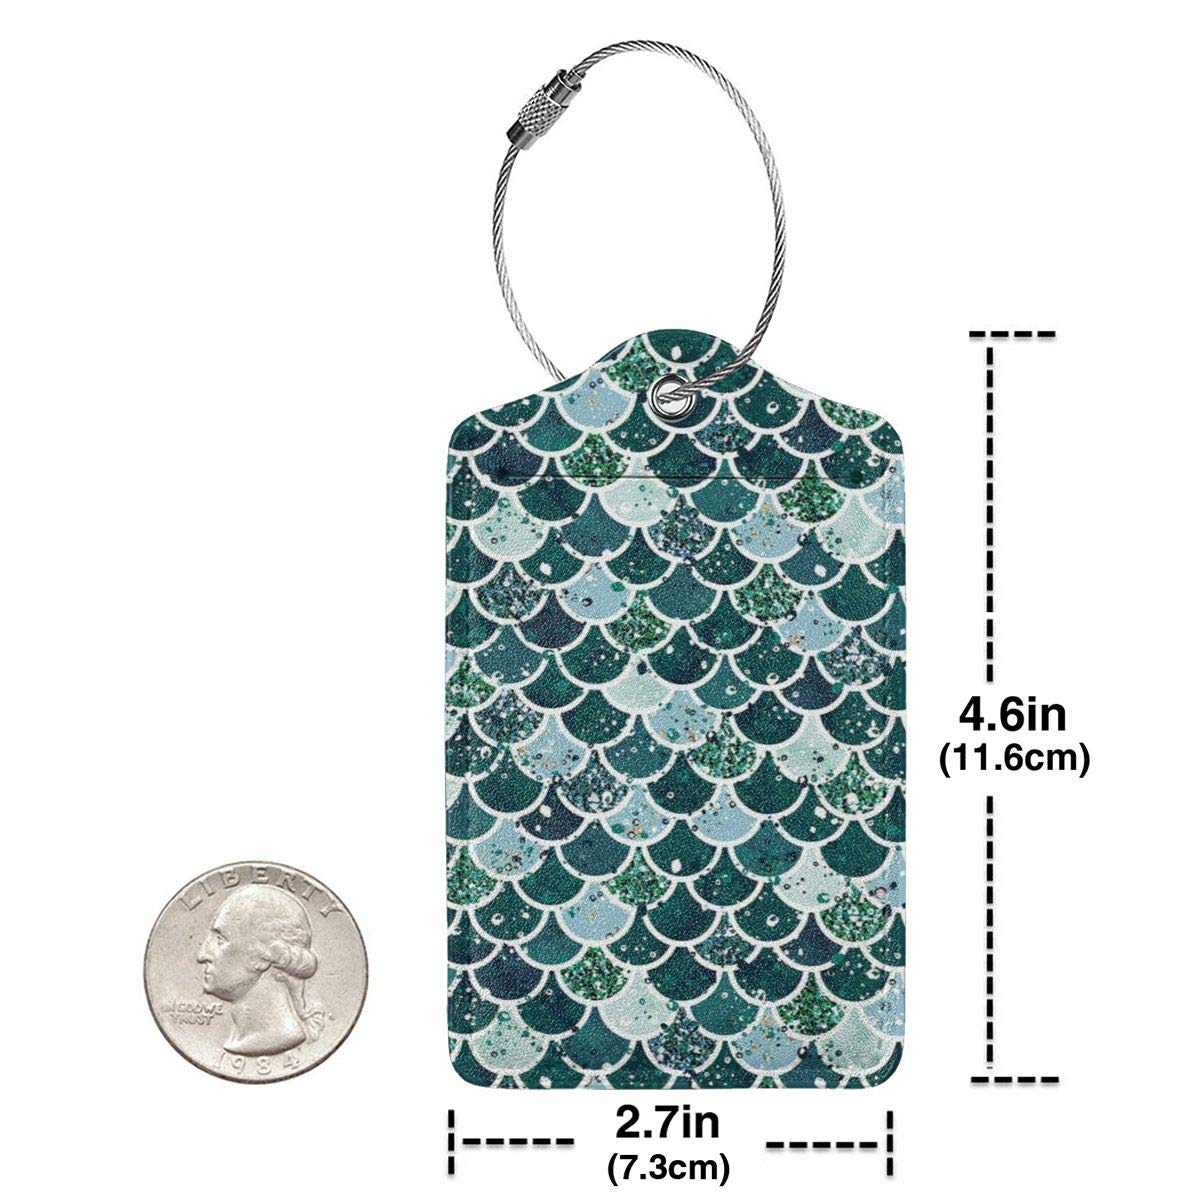 Sea-dragon-scales Leather Luggage Tags Personalized Address Card With Privacy Flap